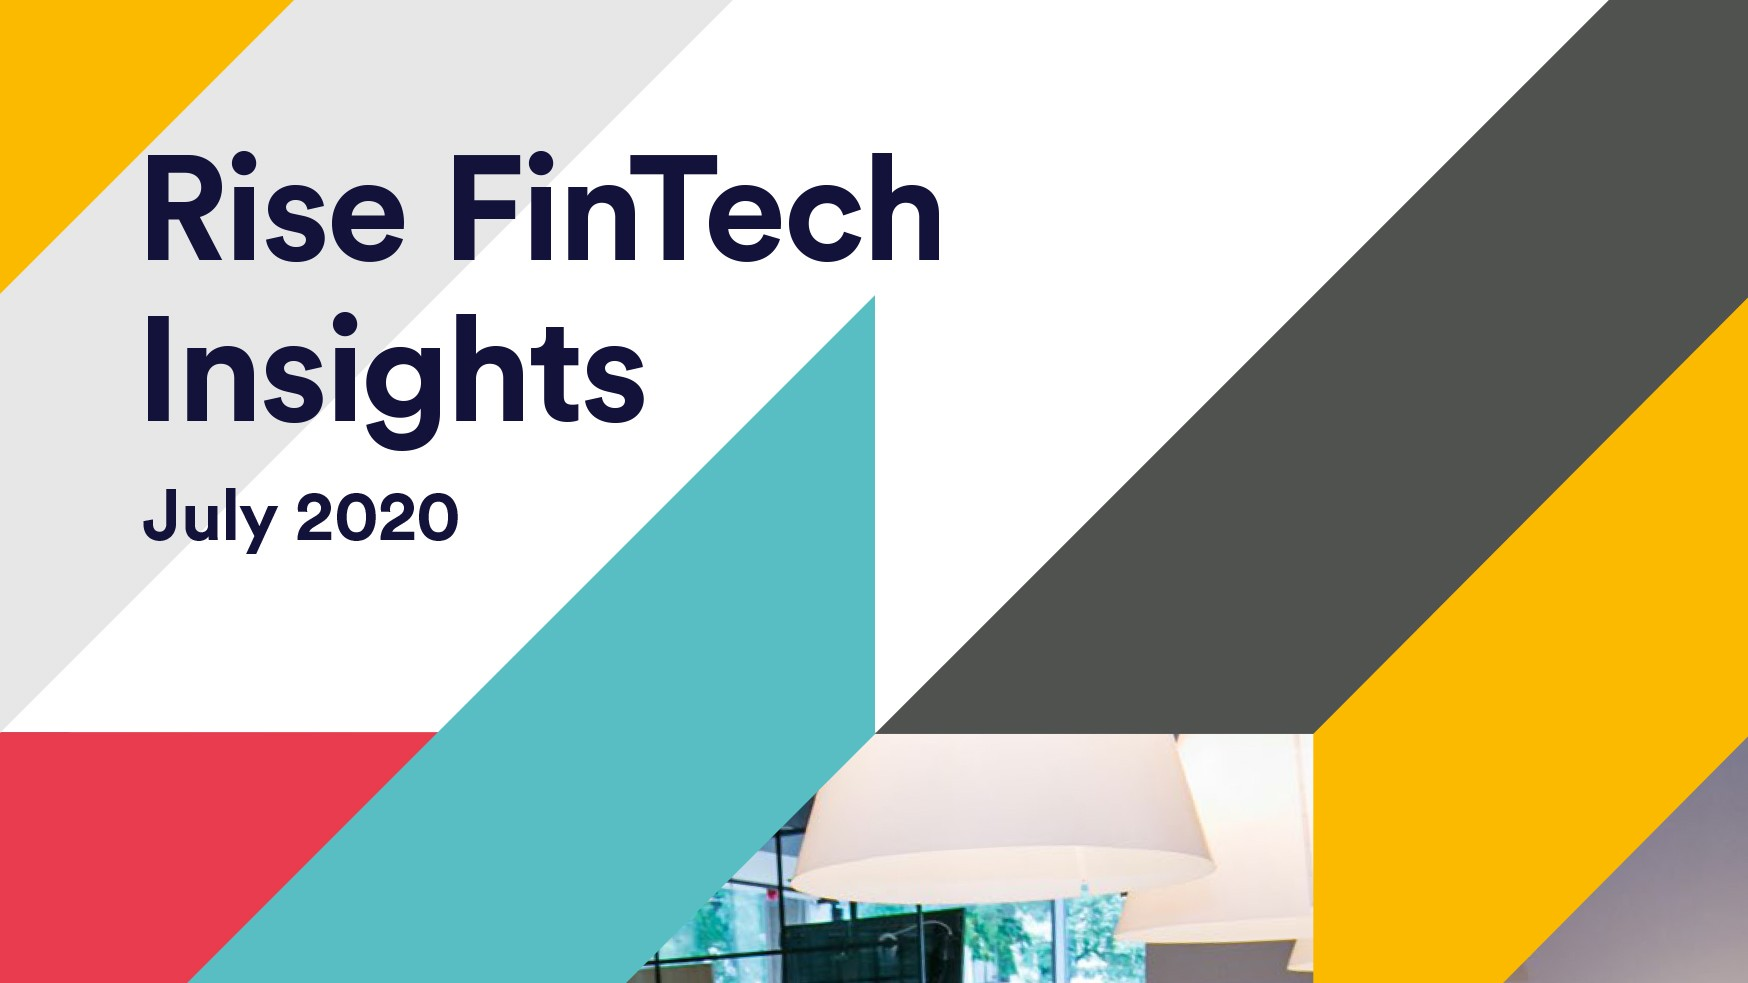 Rise FinTech Insights report